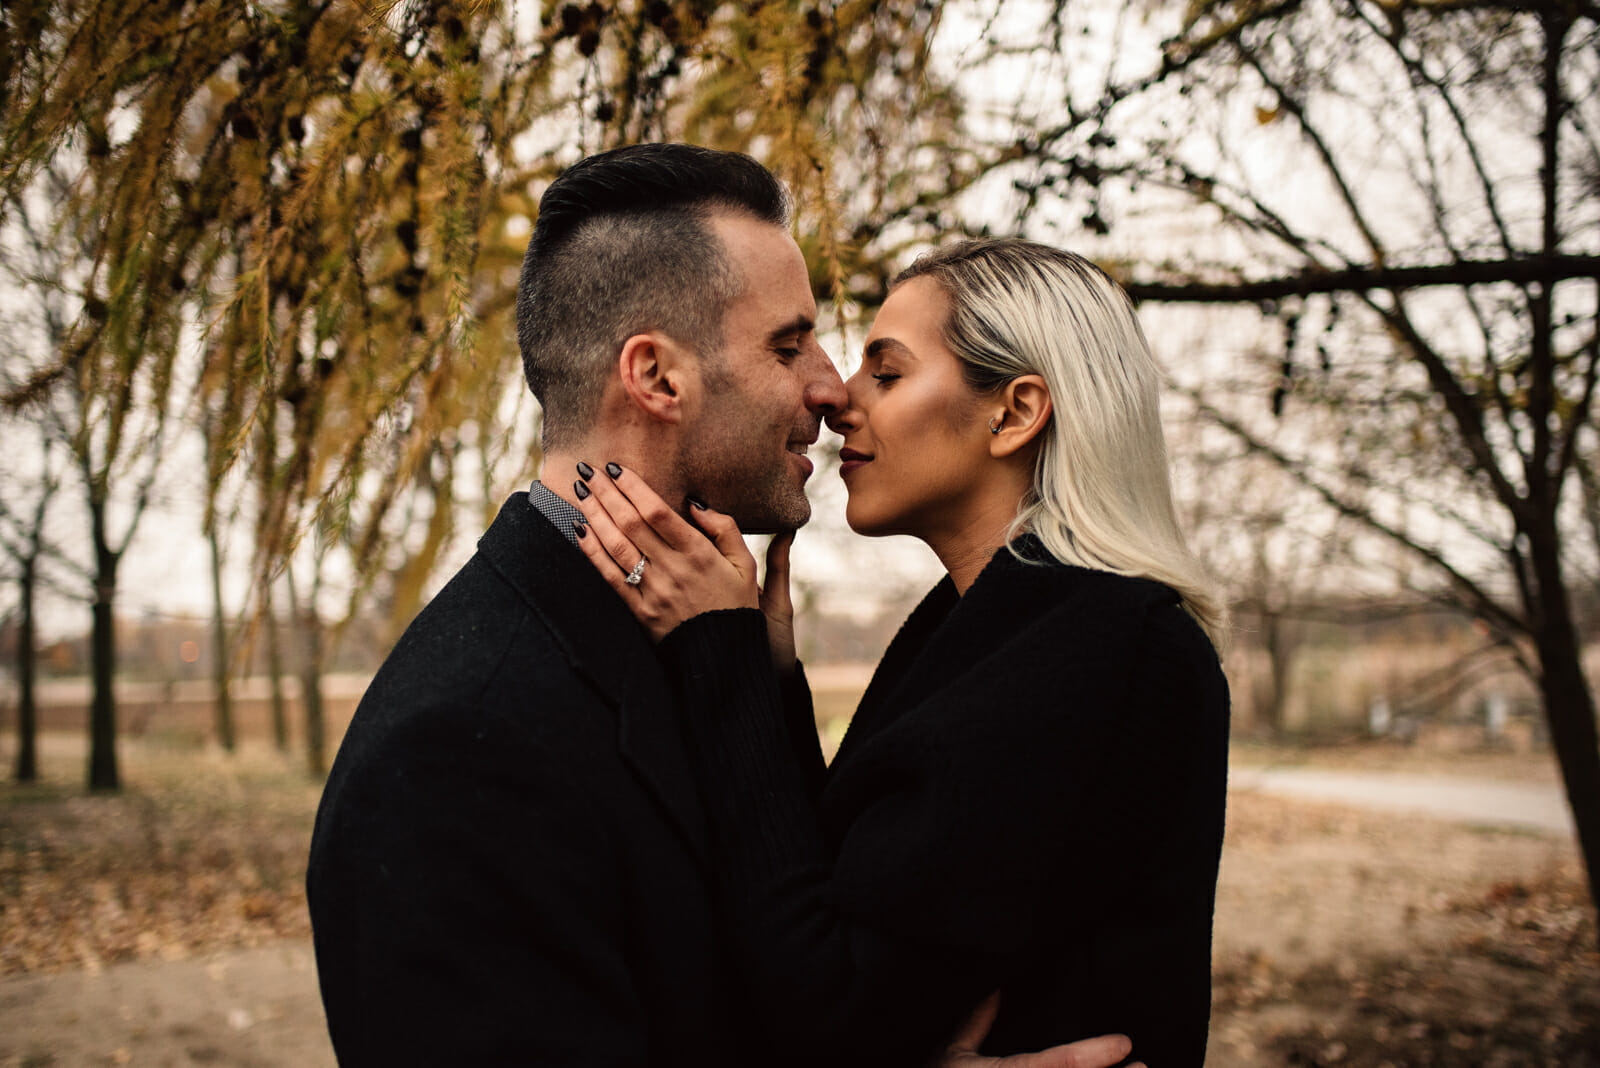 romantic moment between fiances at engagement session